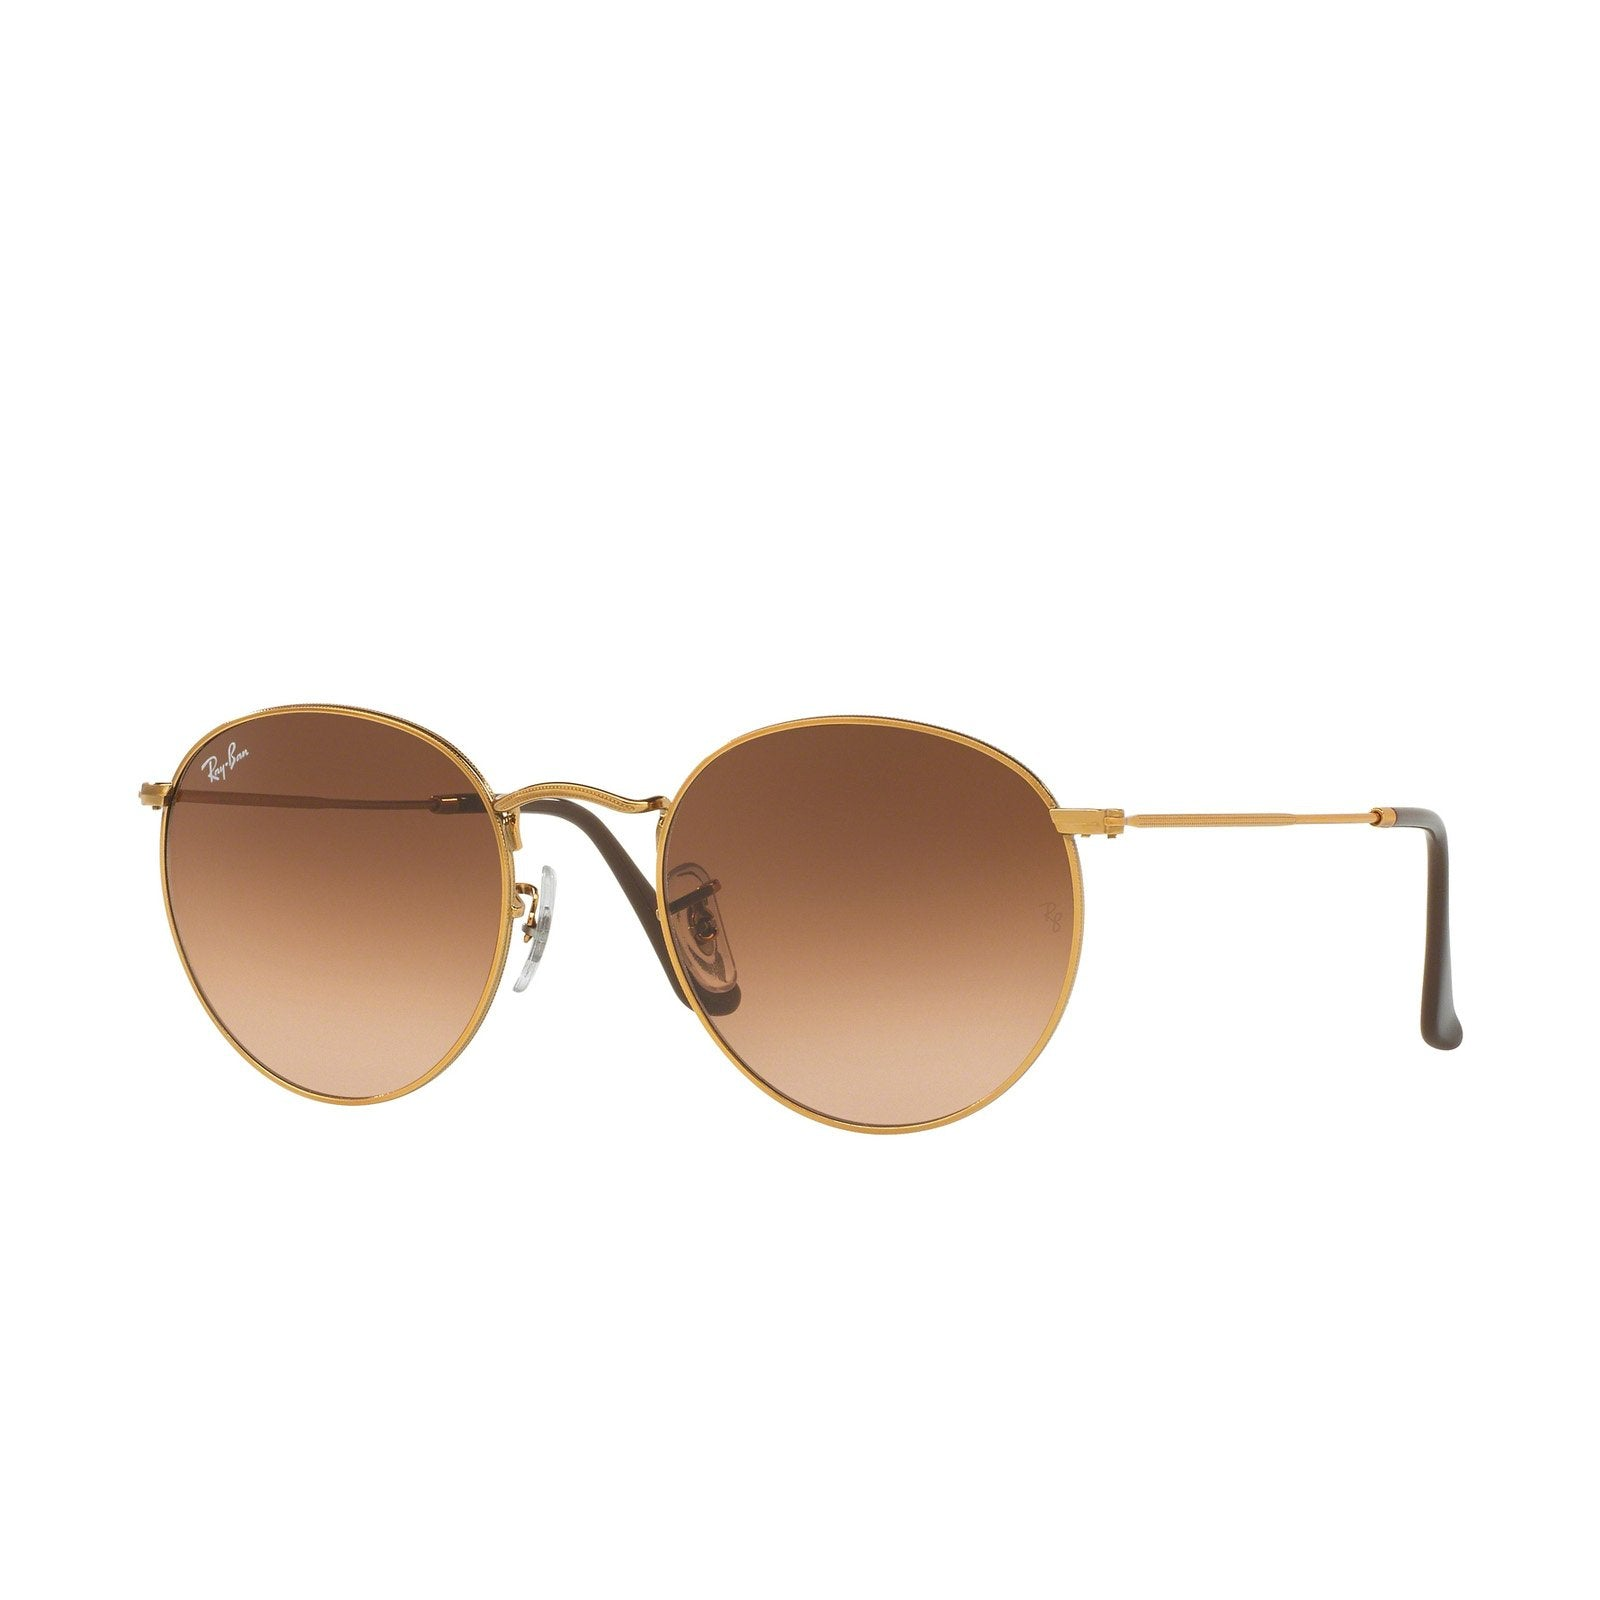 Ray-Ban RB3447 9001A5 Sunglasses